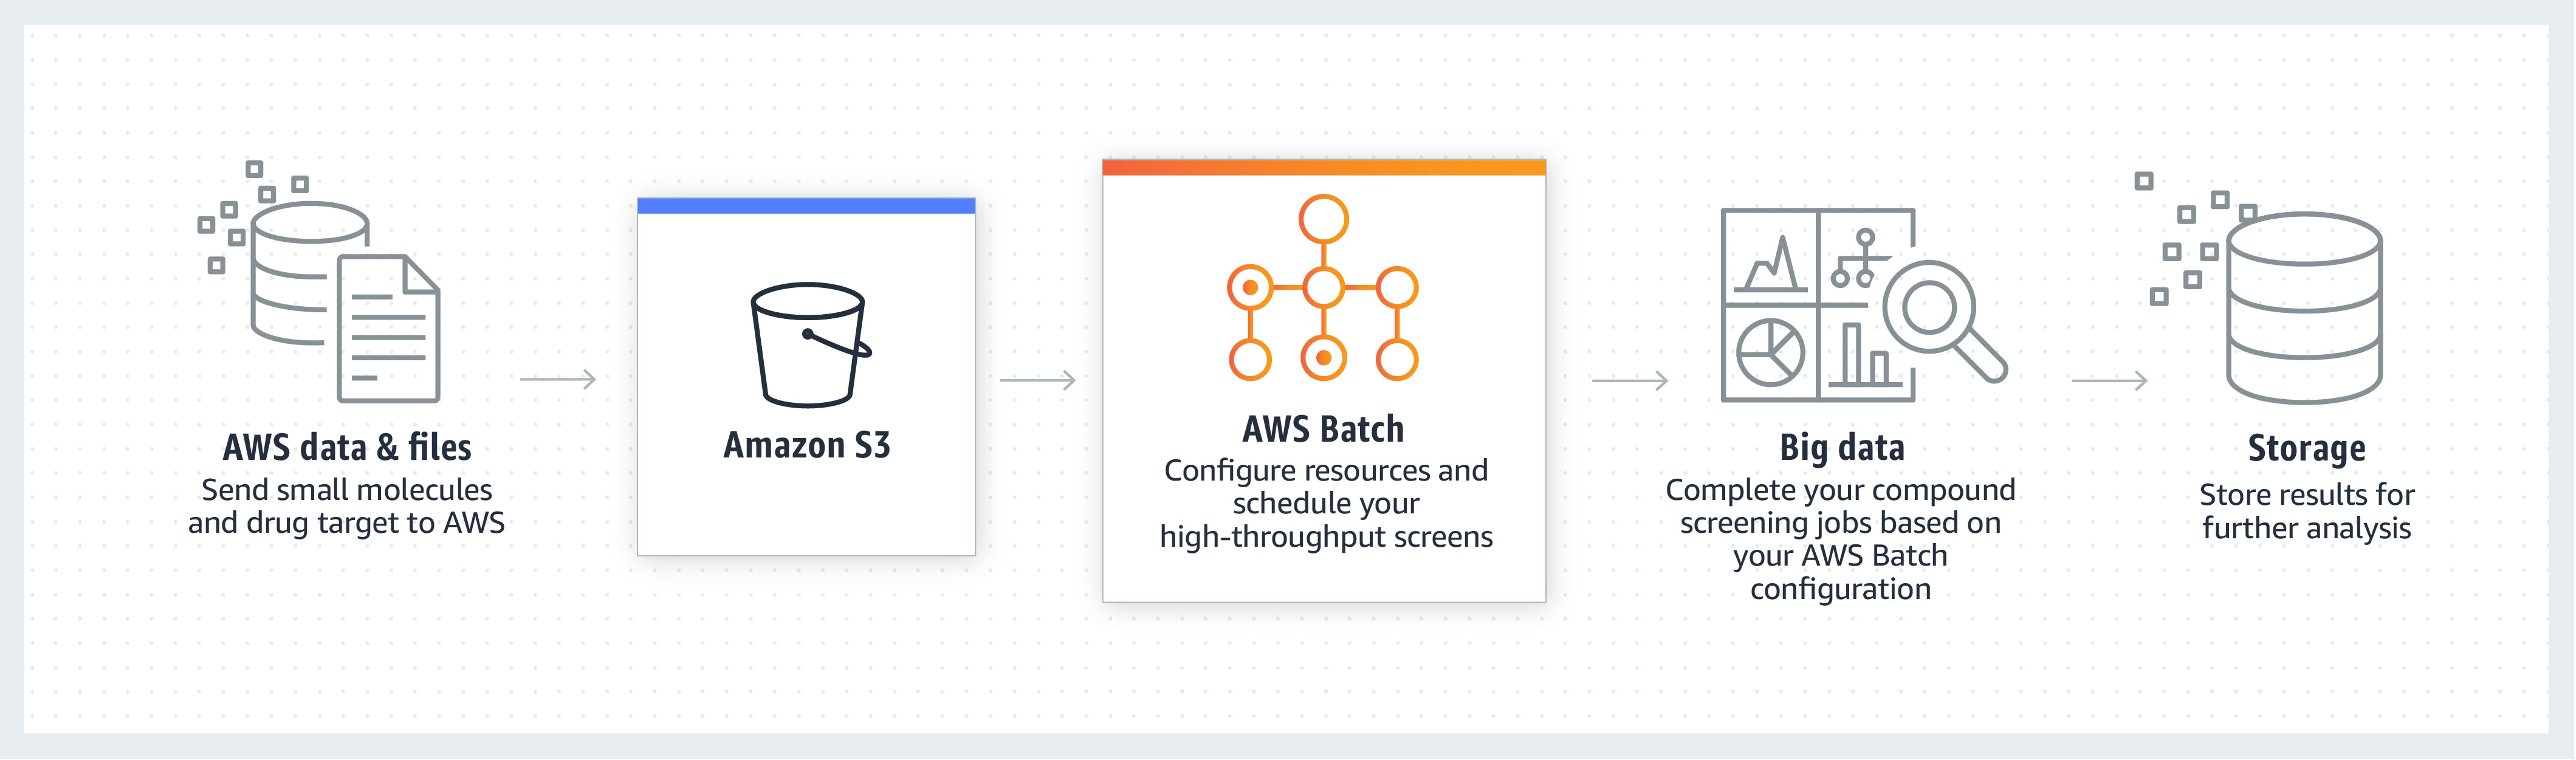 product-page-diagram_AWS-Batch.ai-2